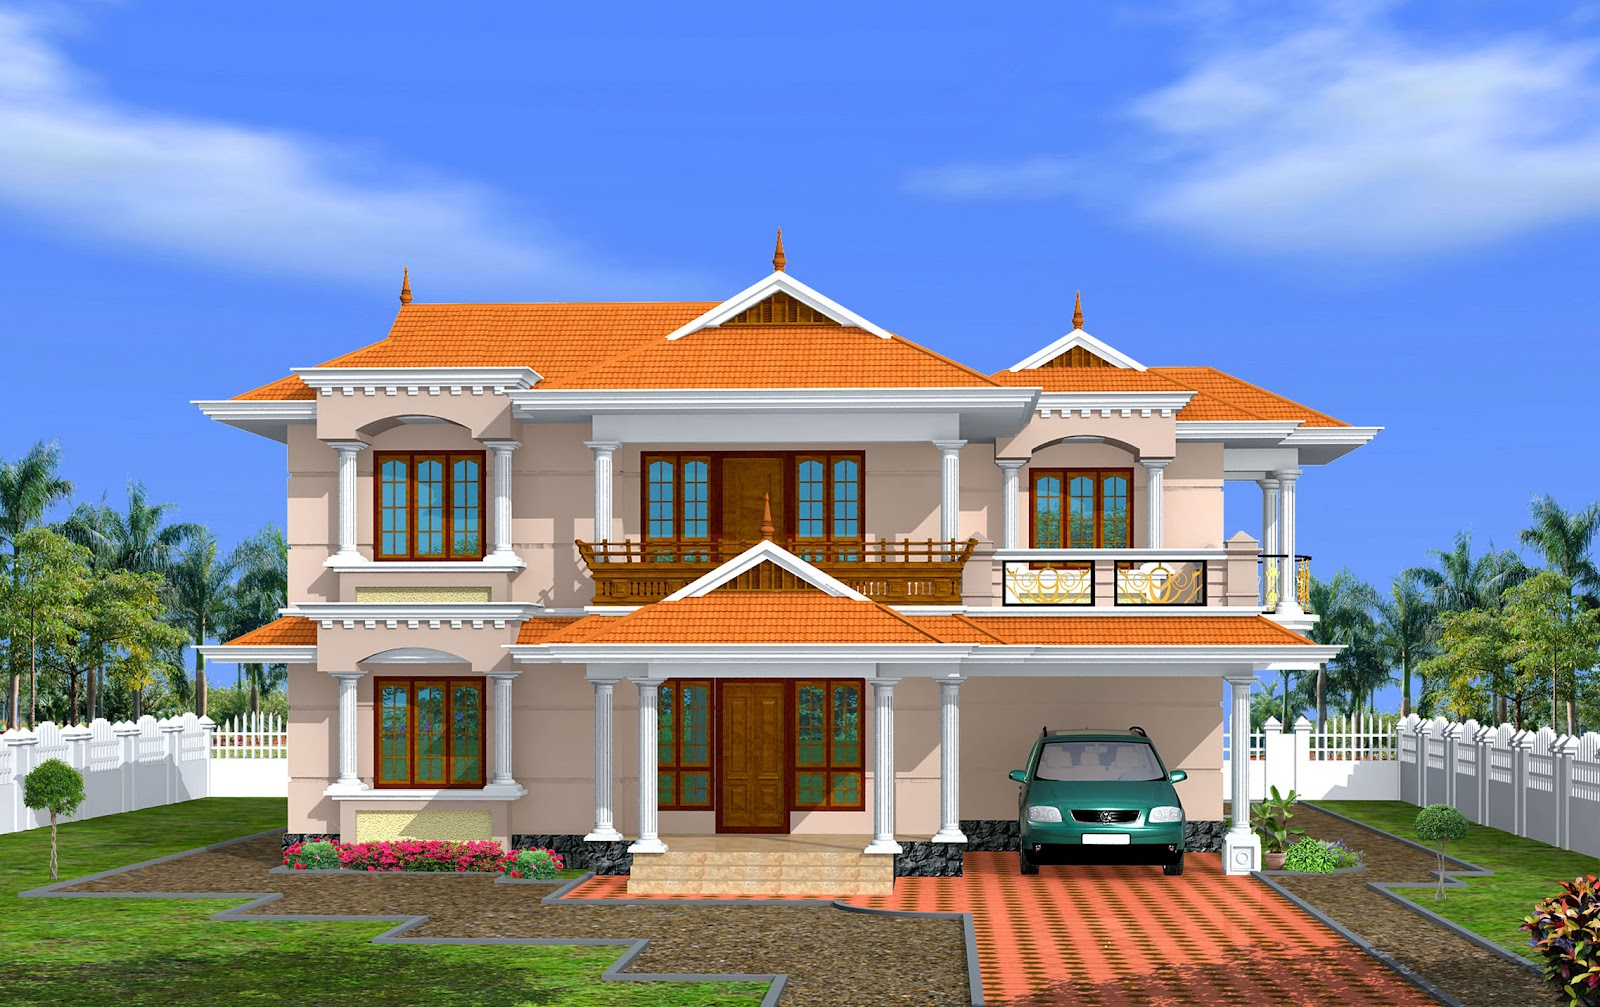 Beach 5 Bedroom House Plans on open floor plans small home